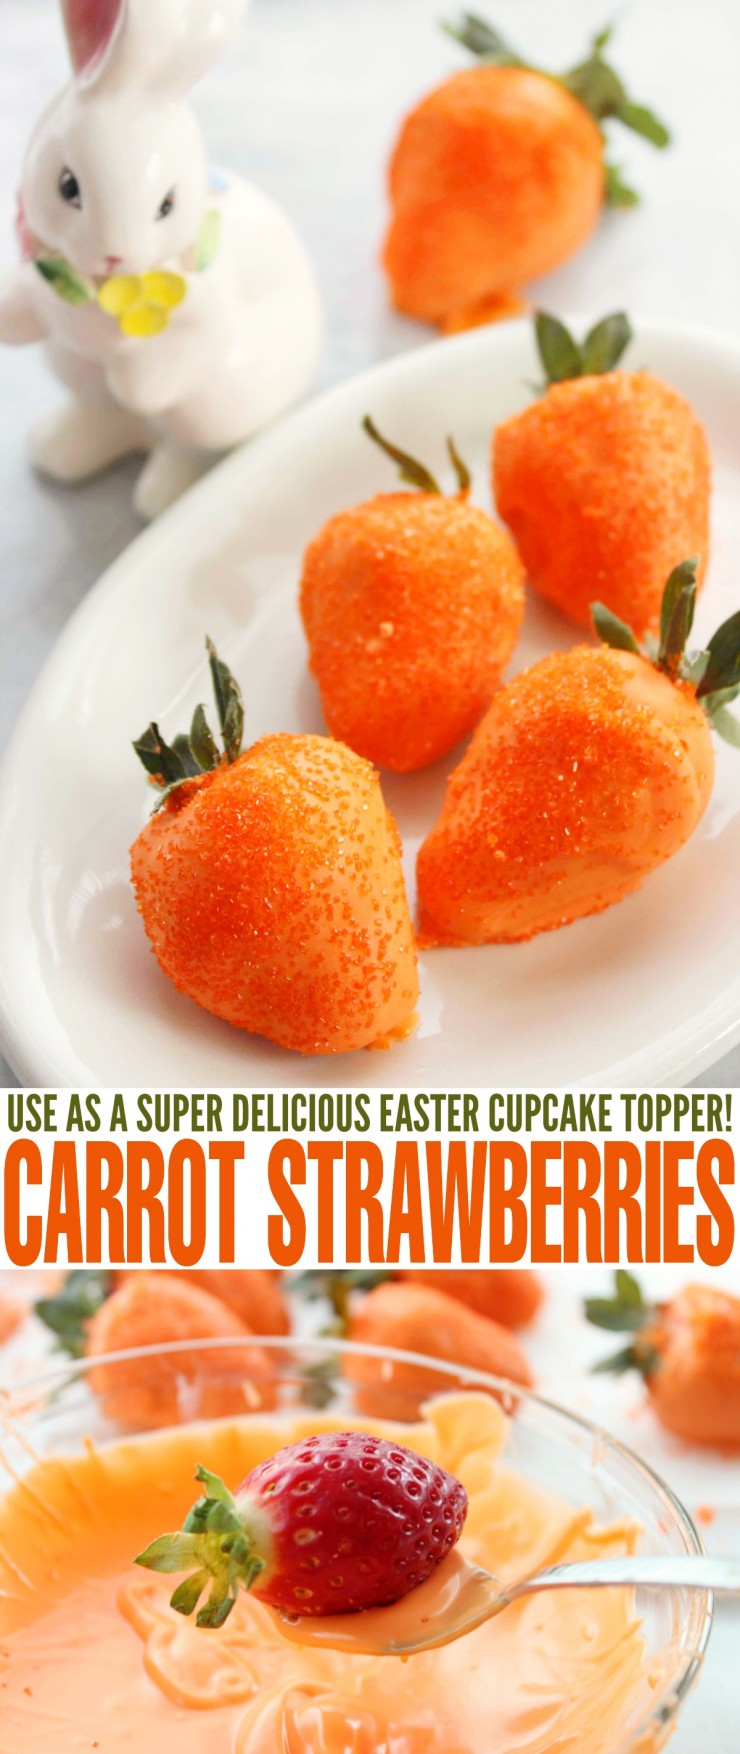 Carrot Strawberries are a super cute twist on chocolate covered strawberries that make them perfect for Easter Dessert! Try using them as a delicious Easter cupcake topper!